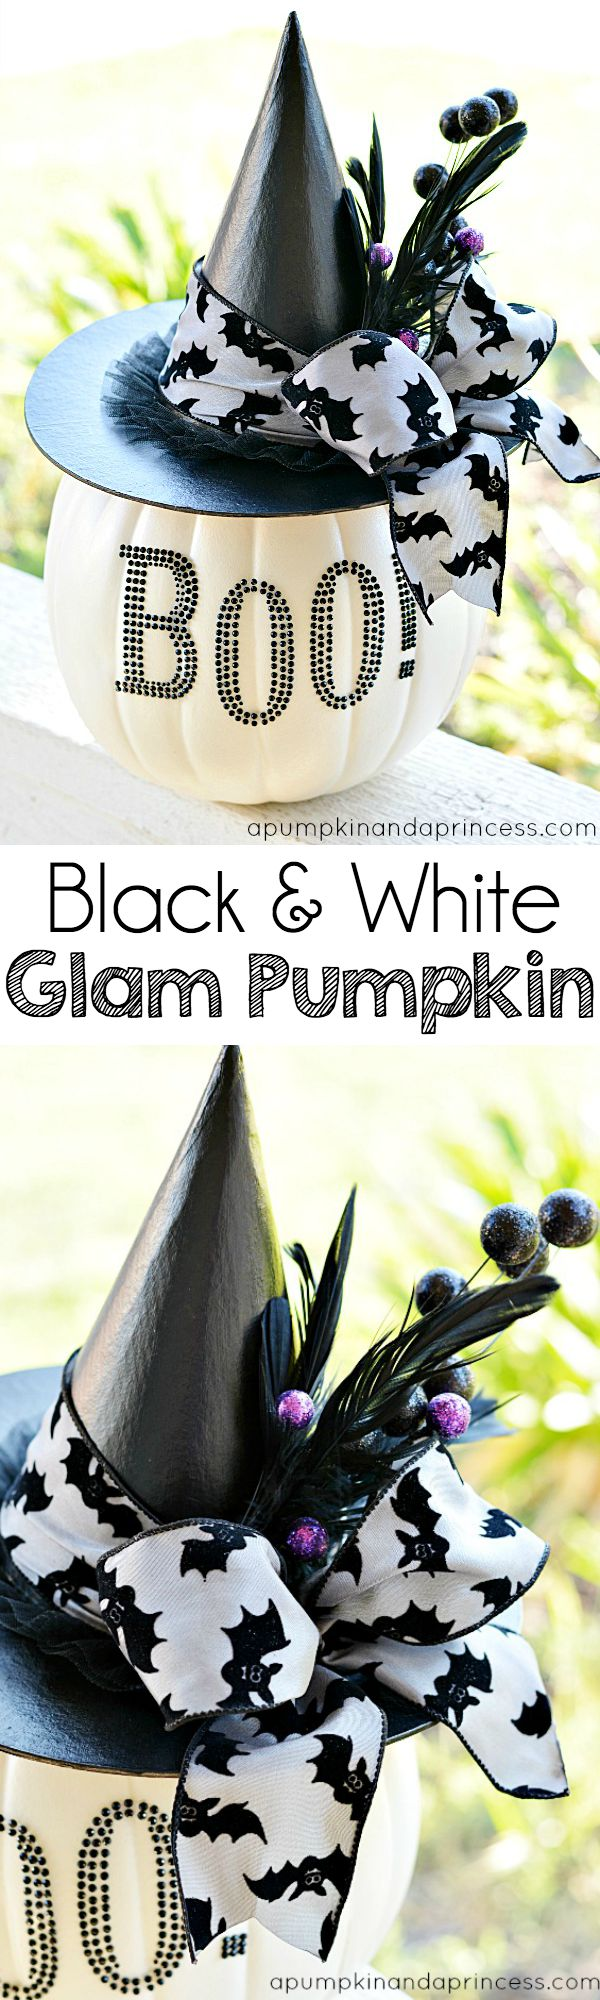 Black and White Glam pumpkin | 25+ no-carve pumpkin ideas